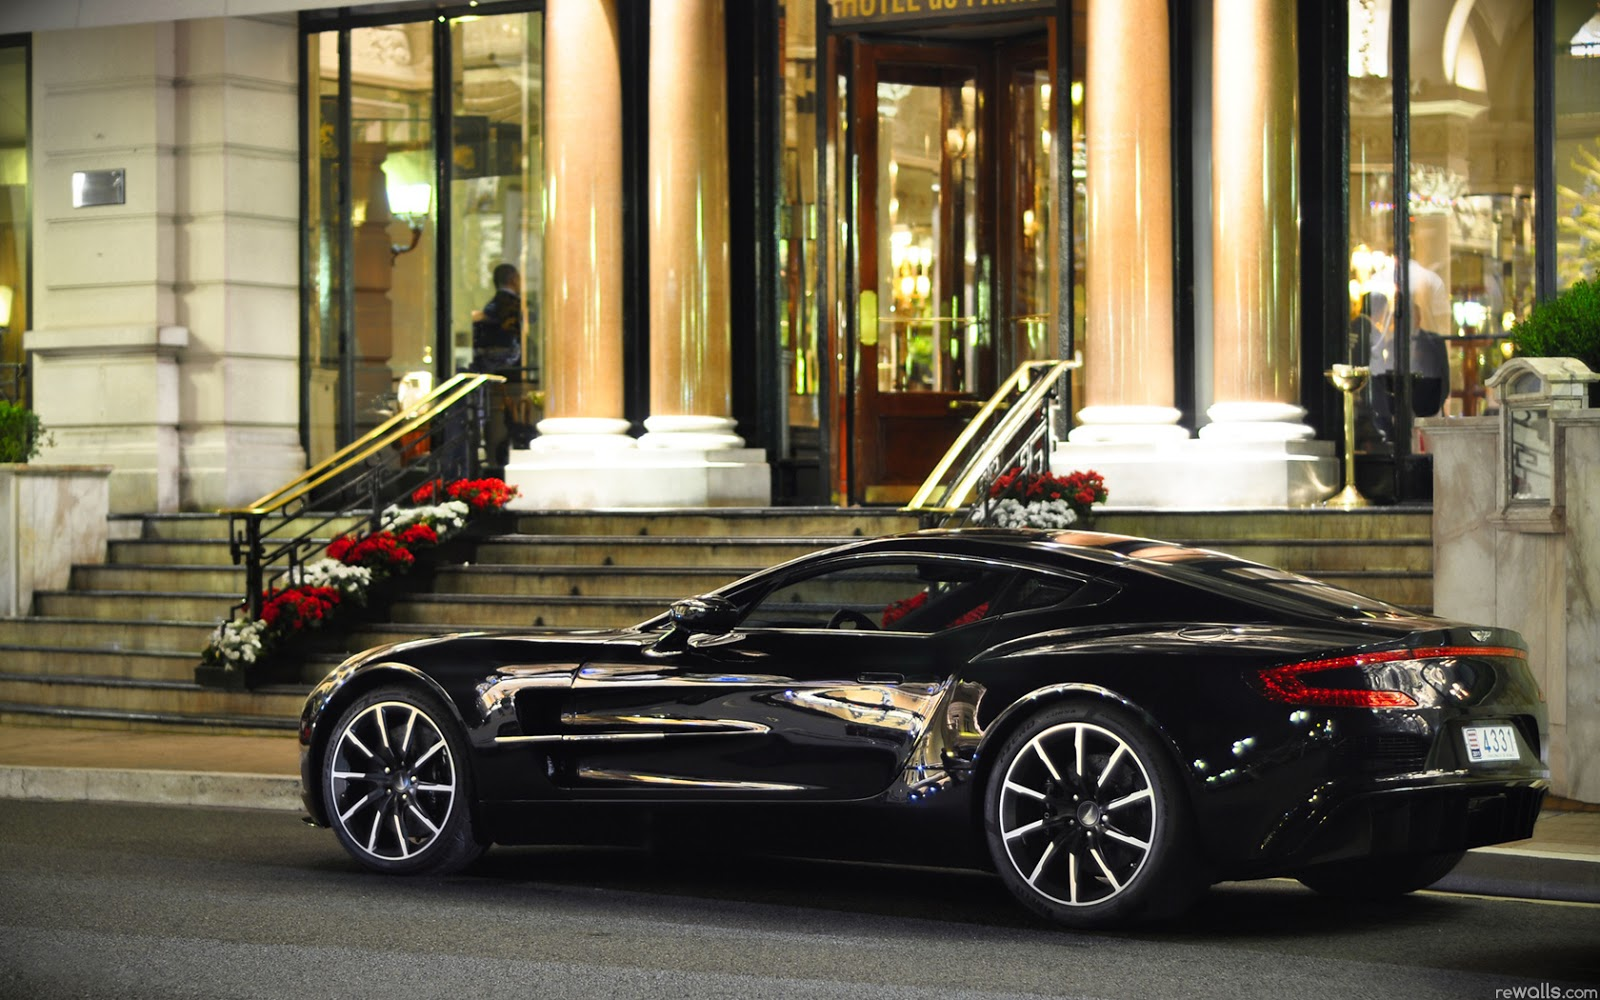 Luxury Life Design: Most Expensive Cars In The World